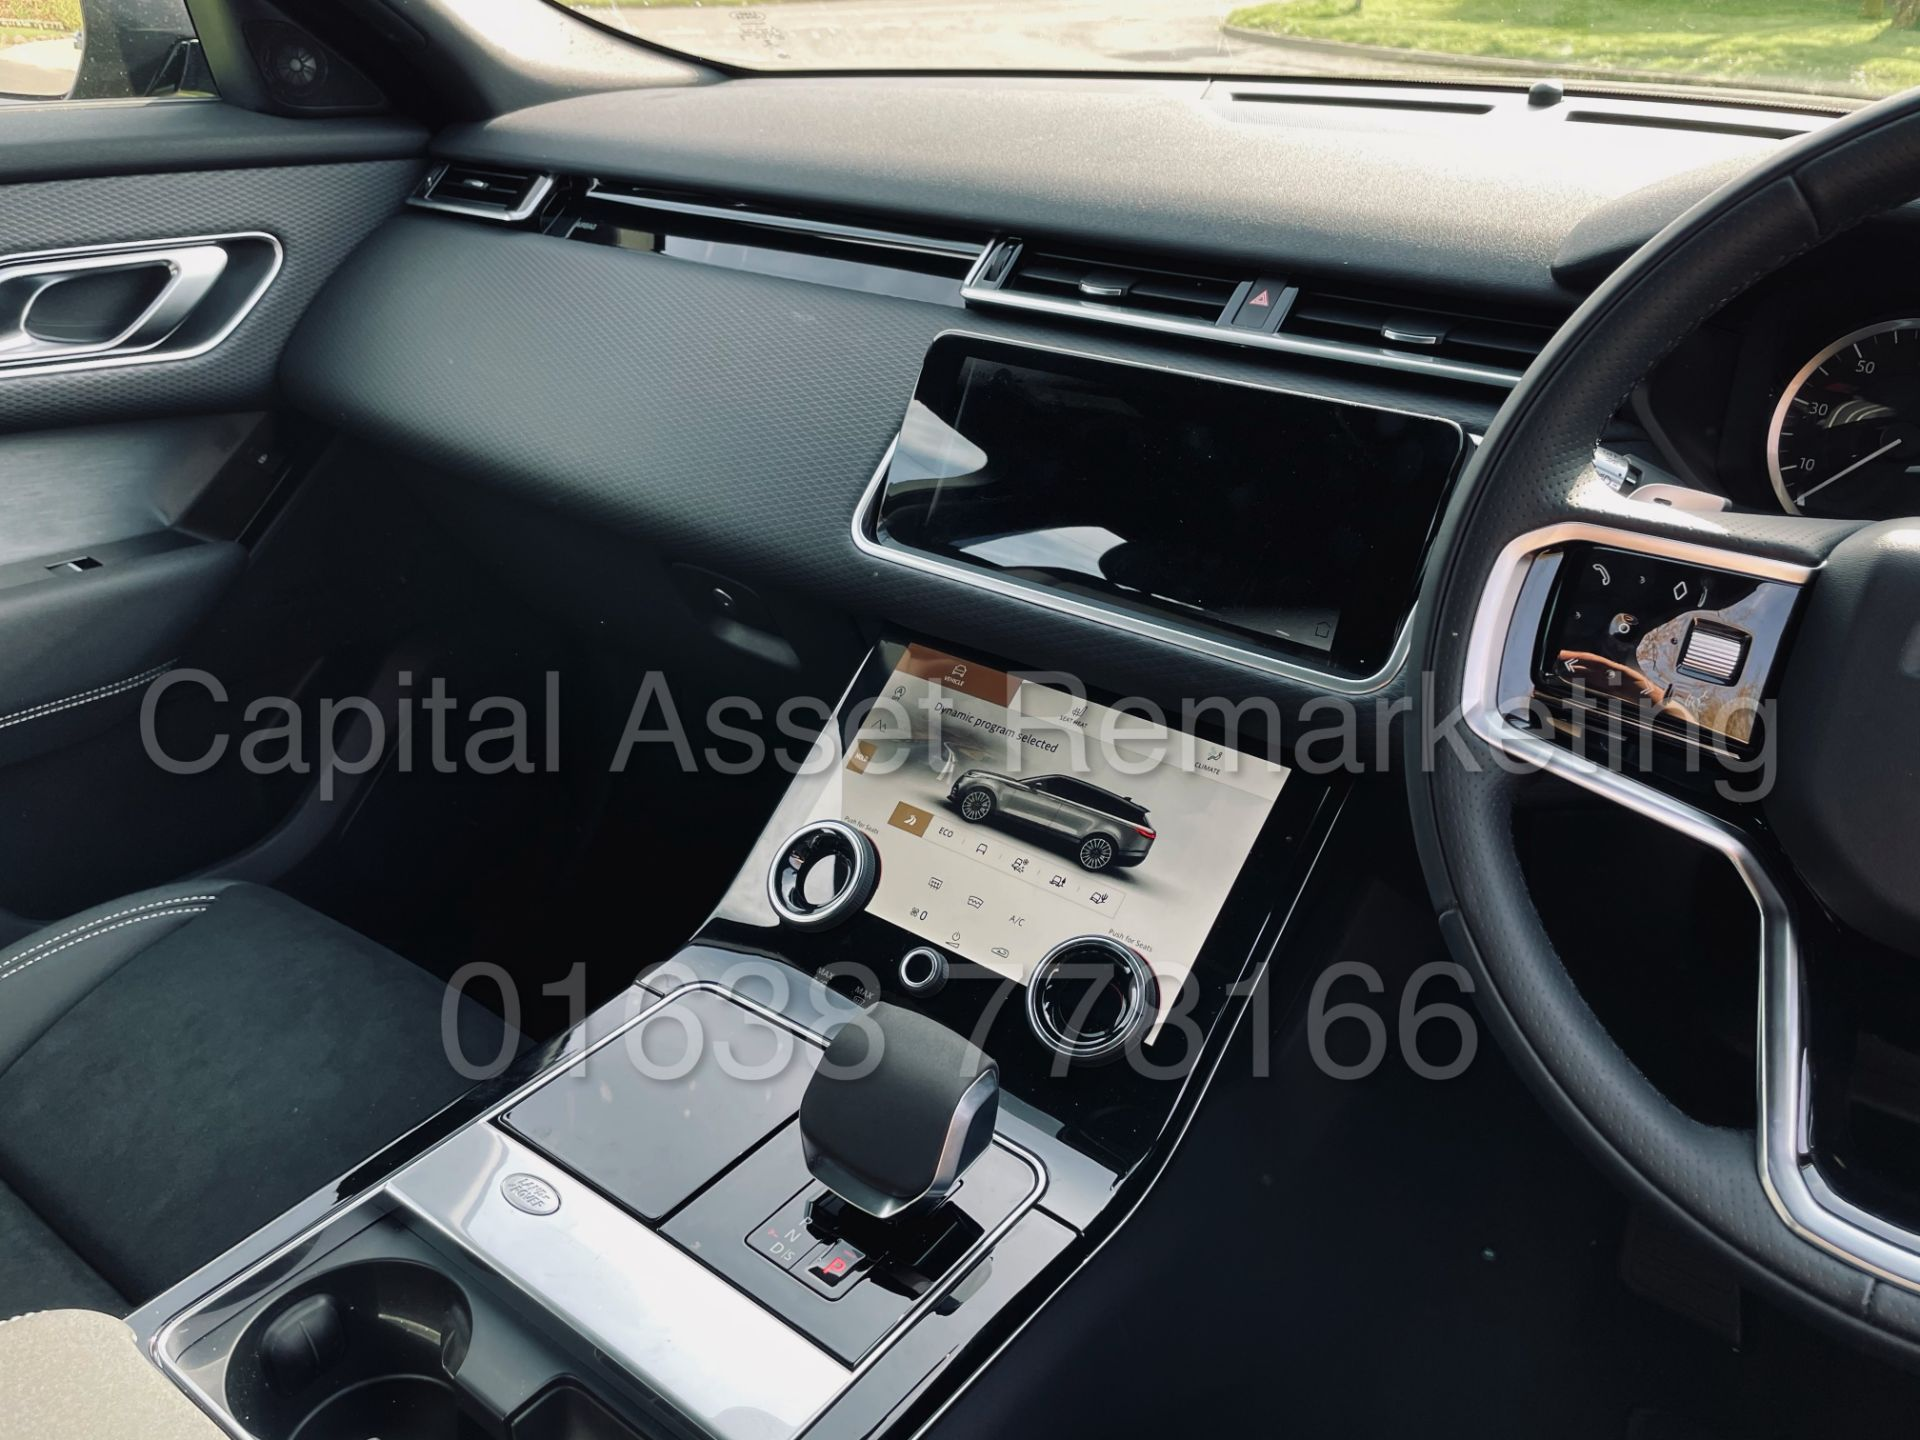 (On Sale) RANGE ROVER VELAR *R-DYNAMIC* SUV (2021) *8 SPEED AUTO - LEATHER* (DELIVERY MILES) - Image 40 of 50